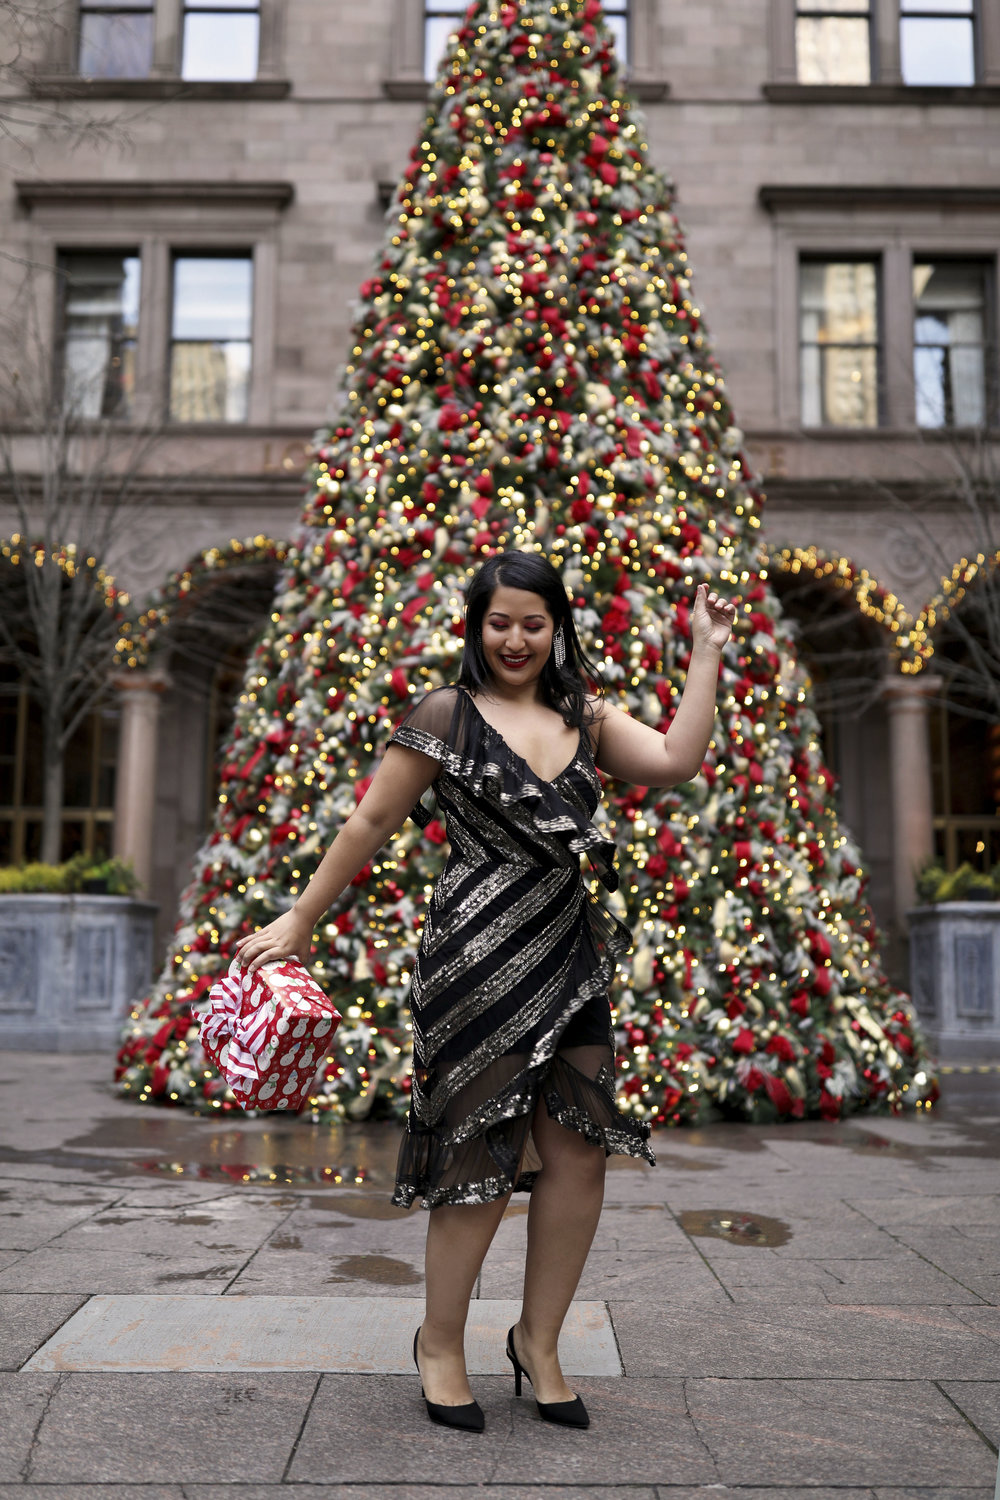 Krity S x Christmas Outfit x Beaded Short Dress8.jpg